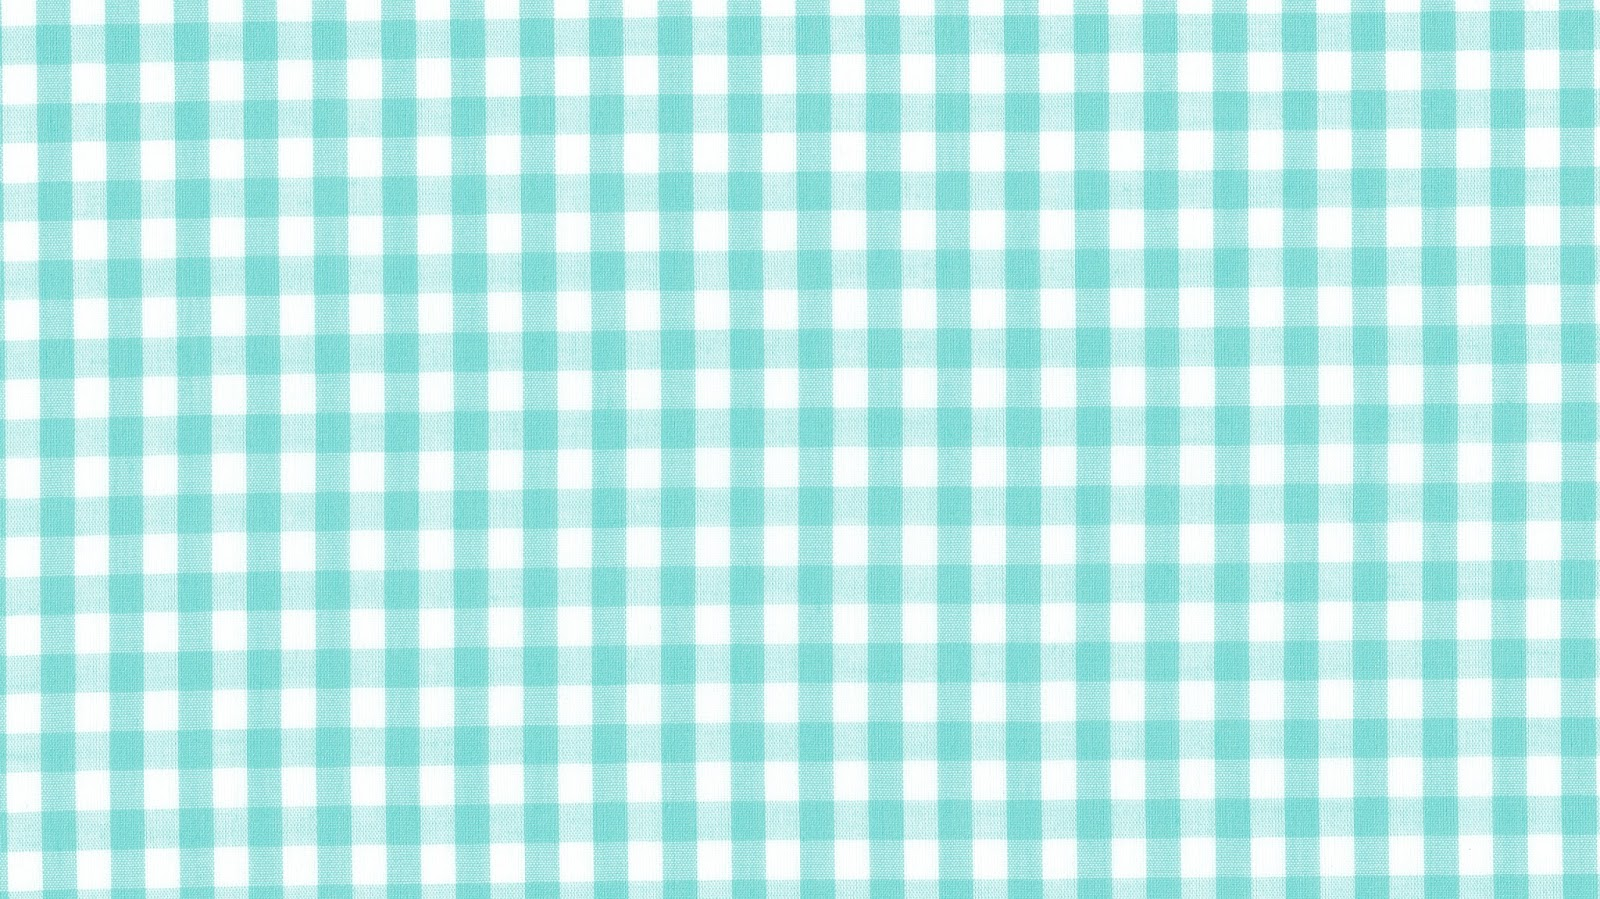 GINGHAM - 9 PRETTY PASTEL DESKTOP AND PHONE WALLPAPERS FOR SPRING.